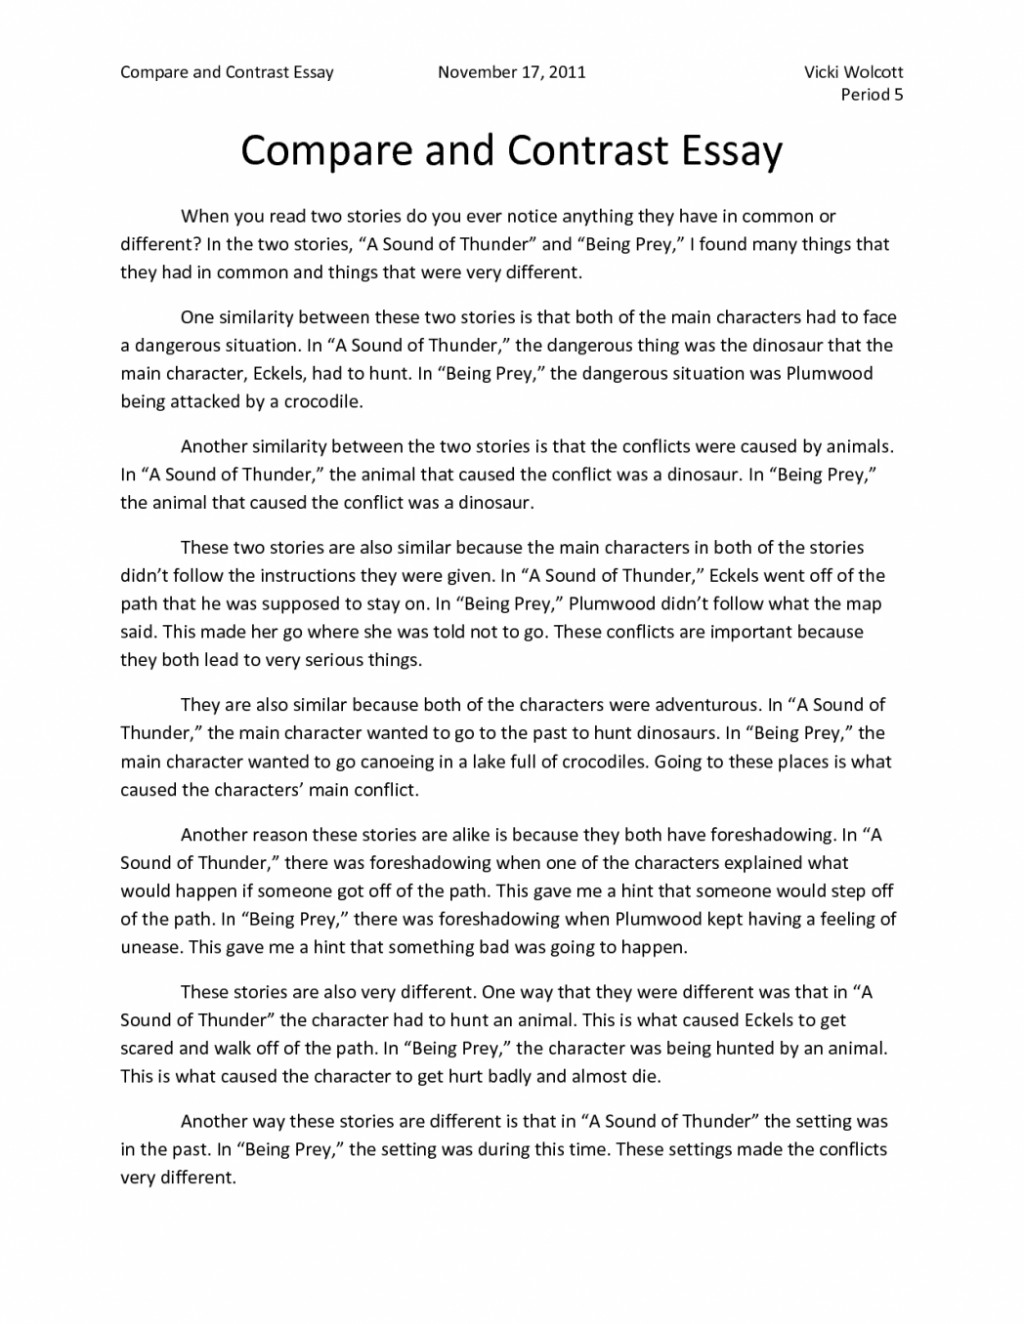 002 Argumentative Essay Topics For Proposal On Immigration Laws Compare And Contrast 1048x1356 Stupendous Large